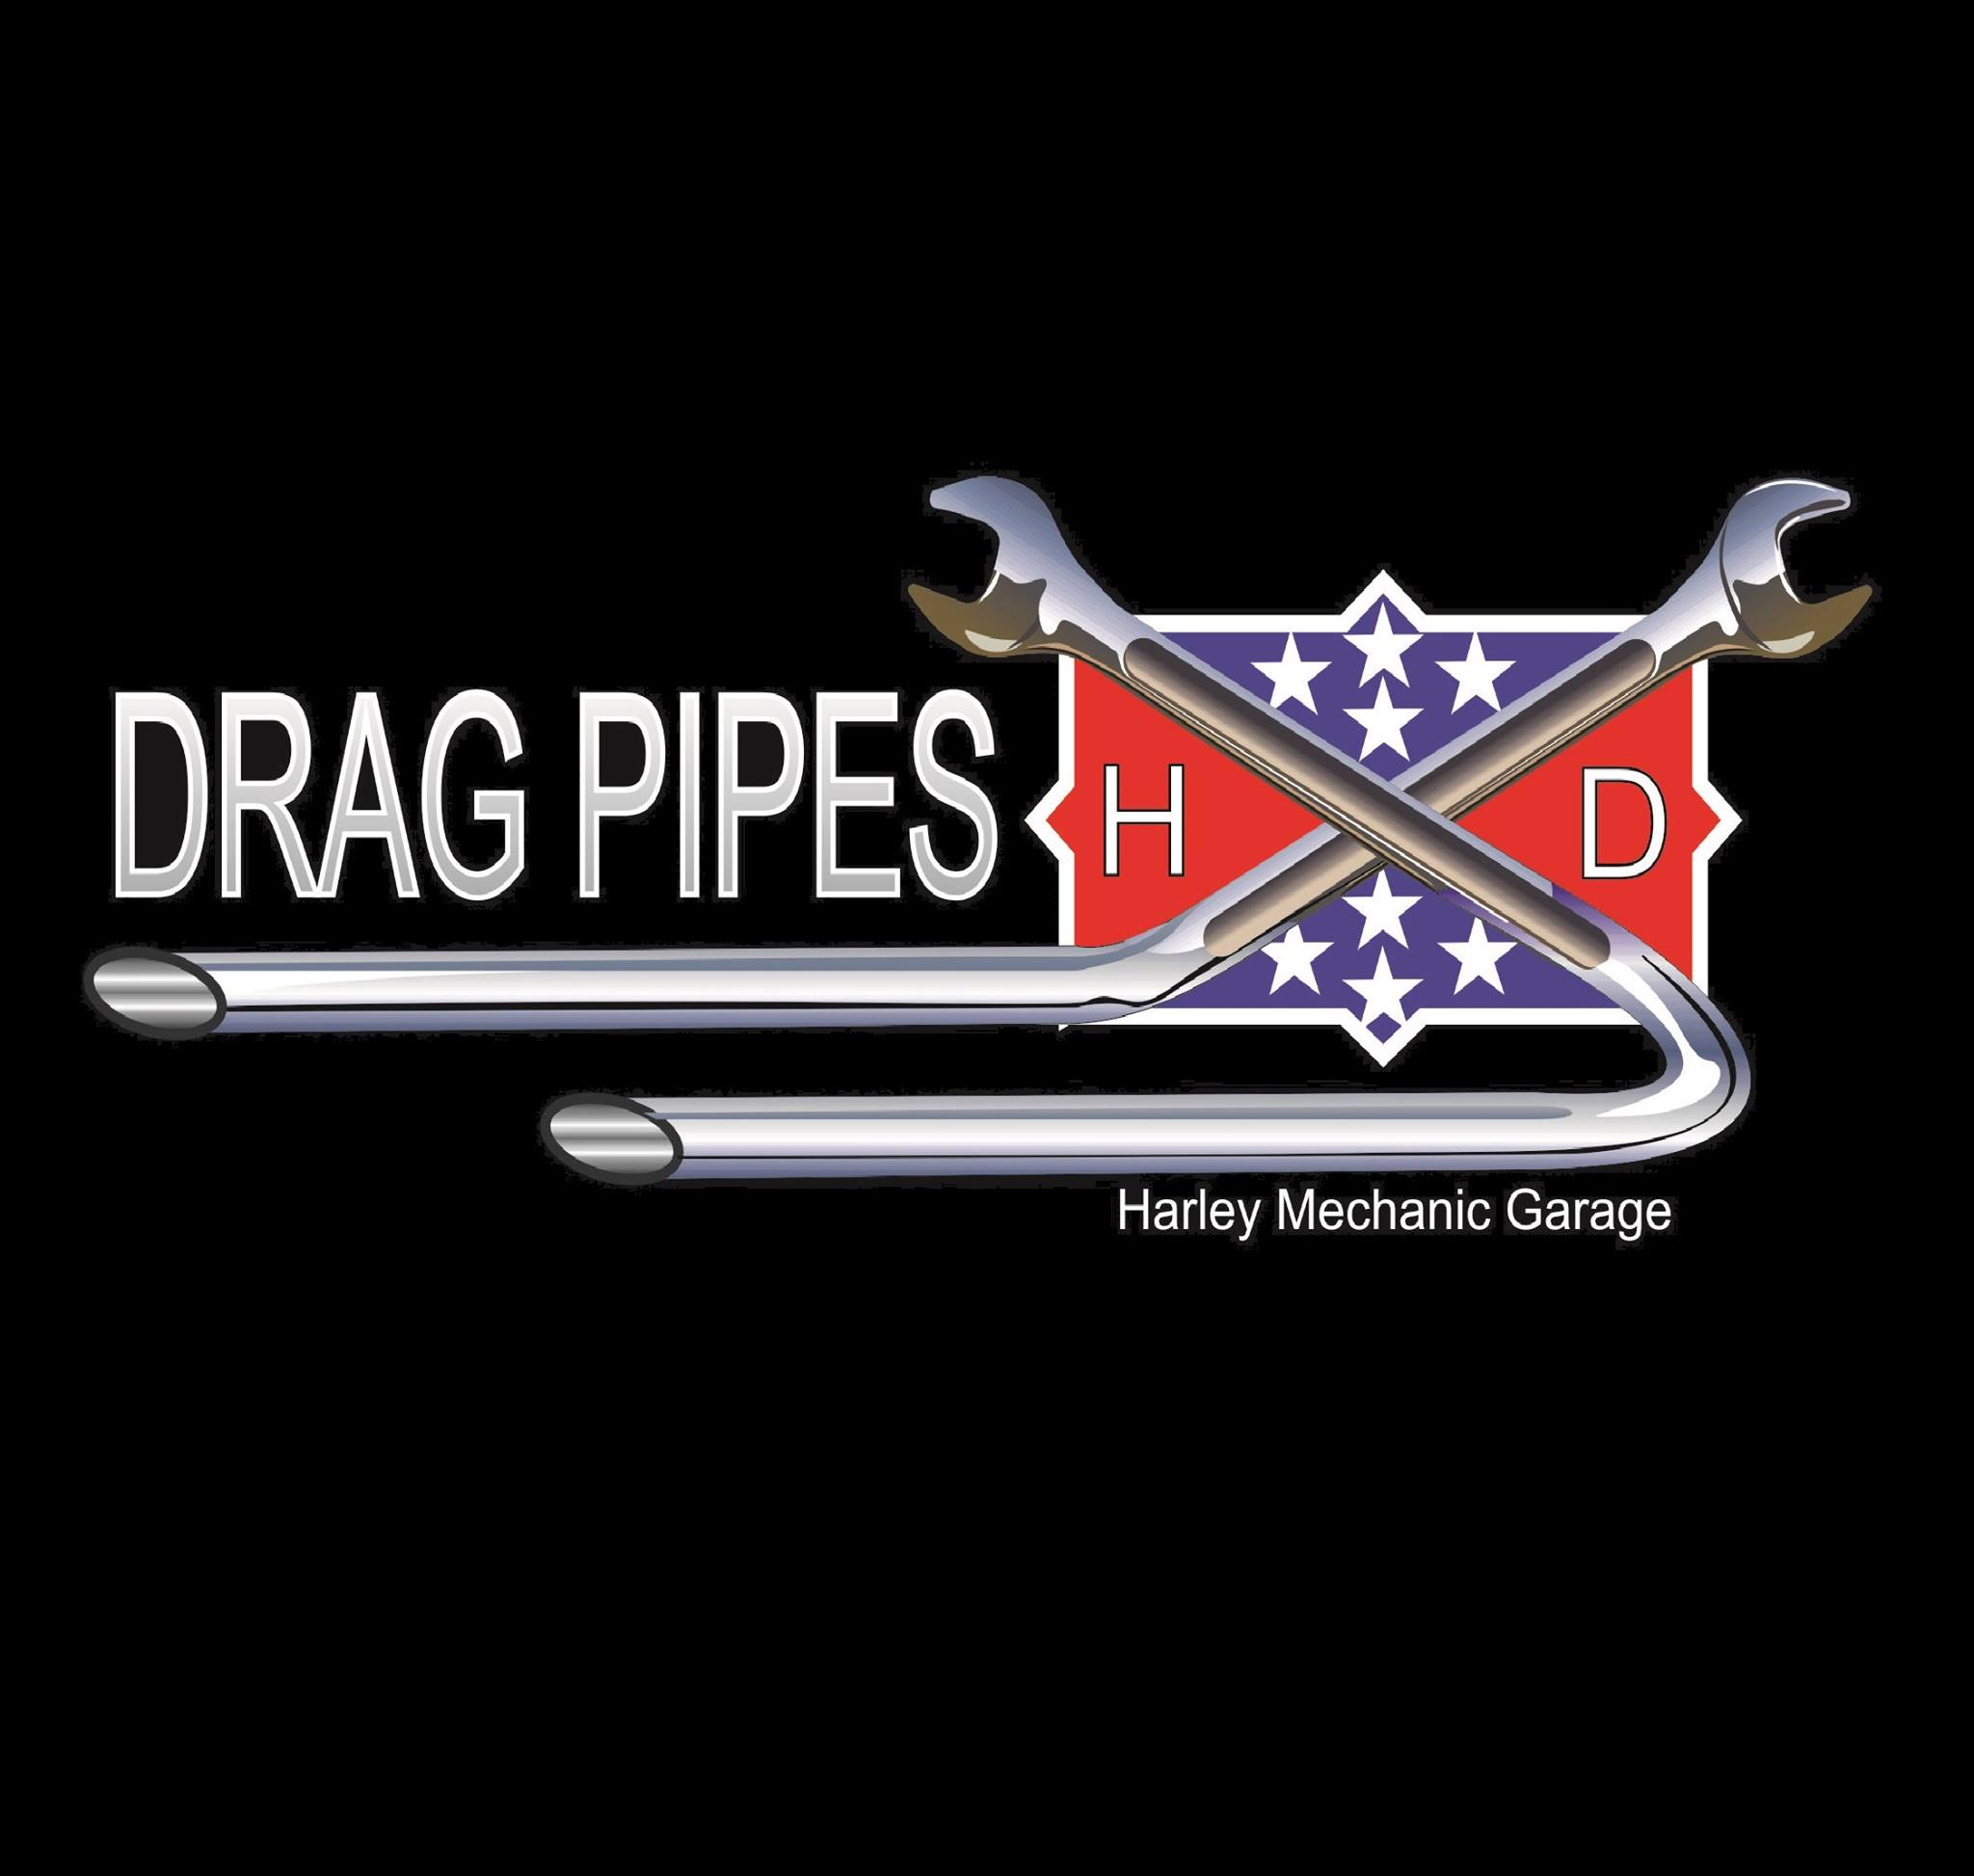 Dragpipes